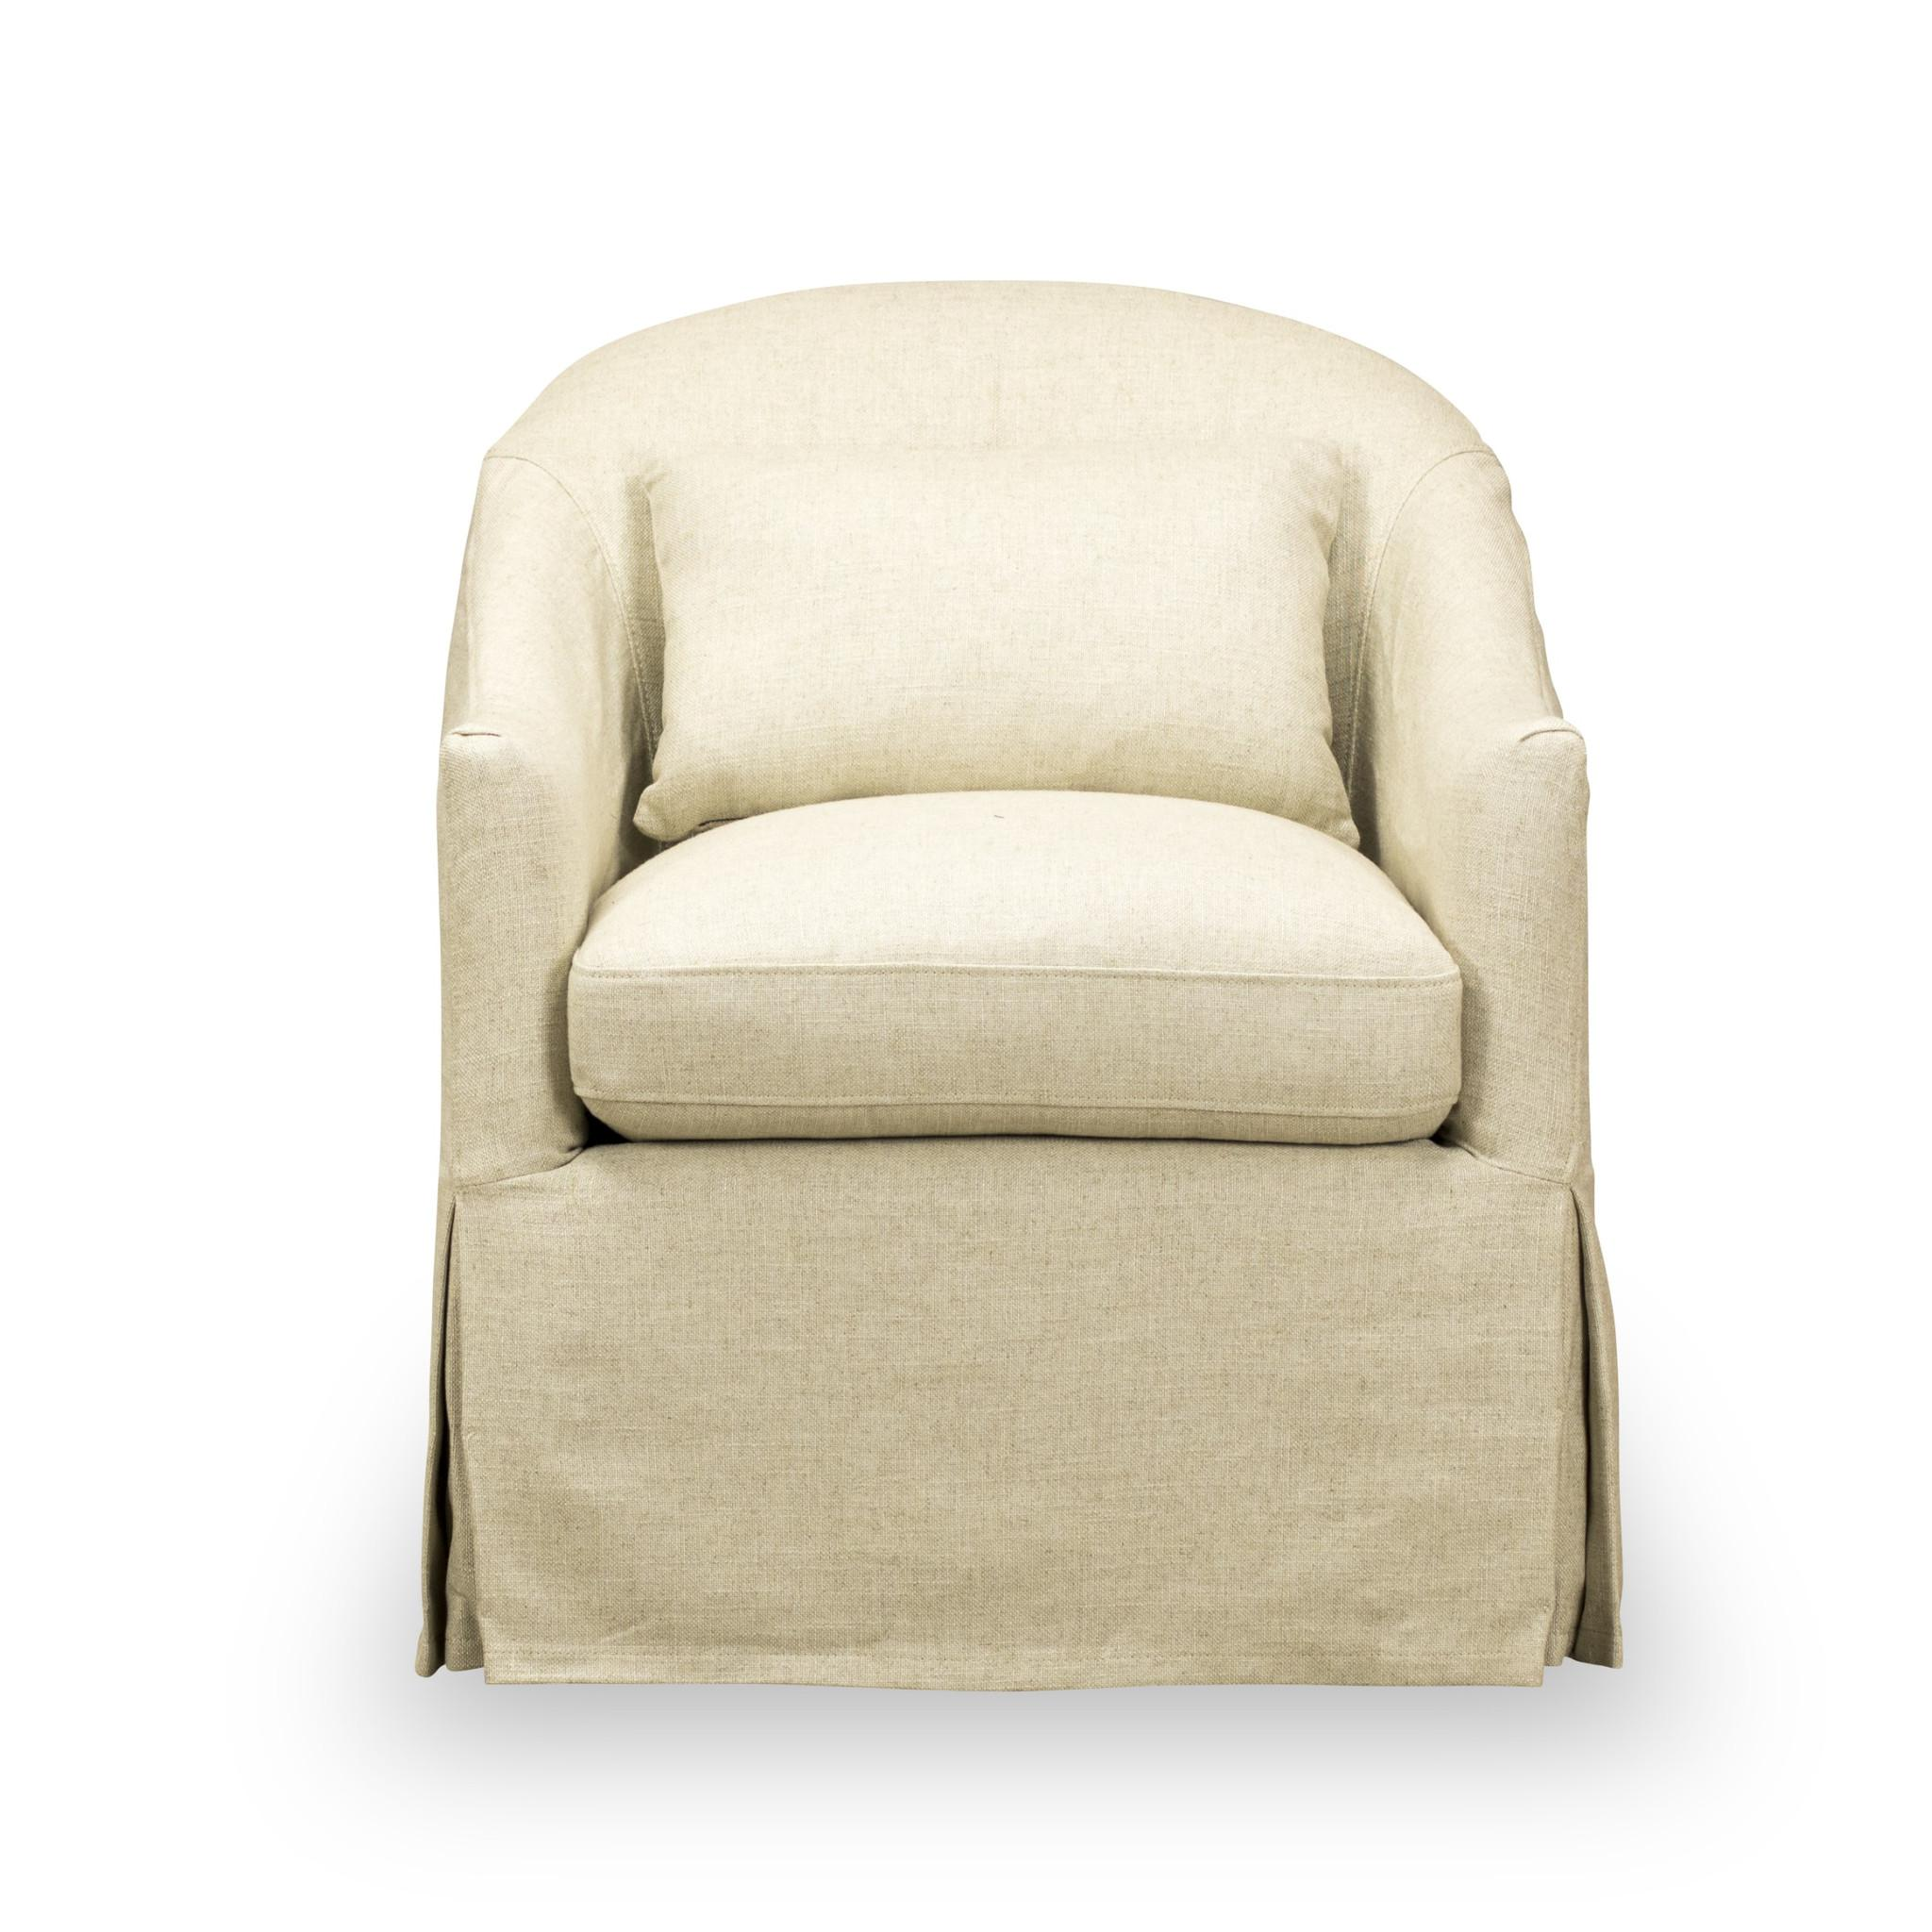 Spectra Home Traditional Linen Slip Cover Chair & Pillow